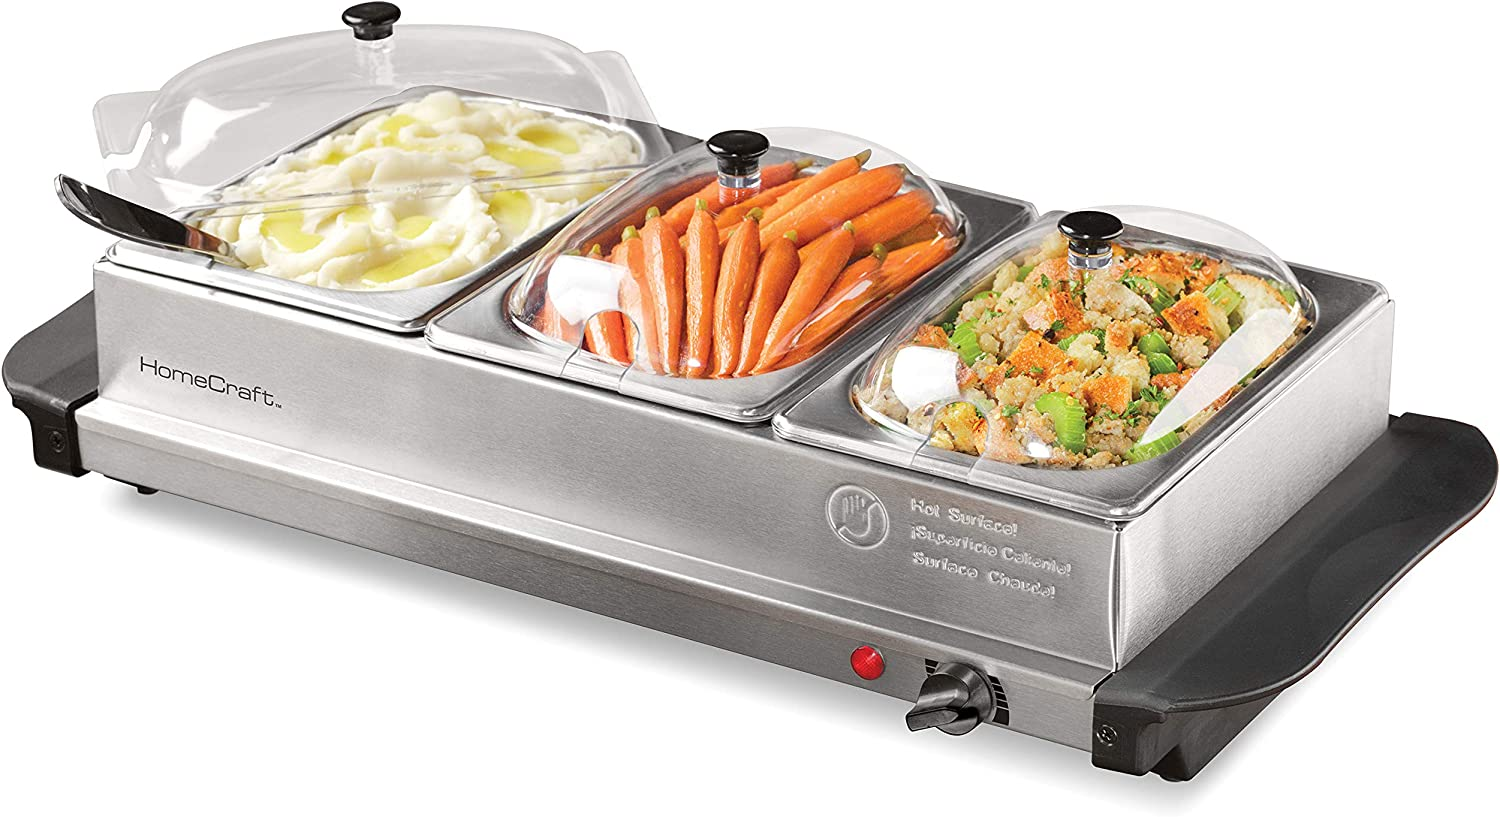 HomeCraft HCBS15SS 3-Station 1.5-Quart Stainless Steel Buffet Server Slow Cooker & Warming Tray, Adjustable Temperature, Perfect For Dinner, Appetizers